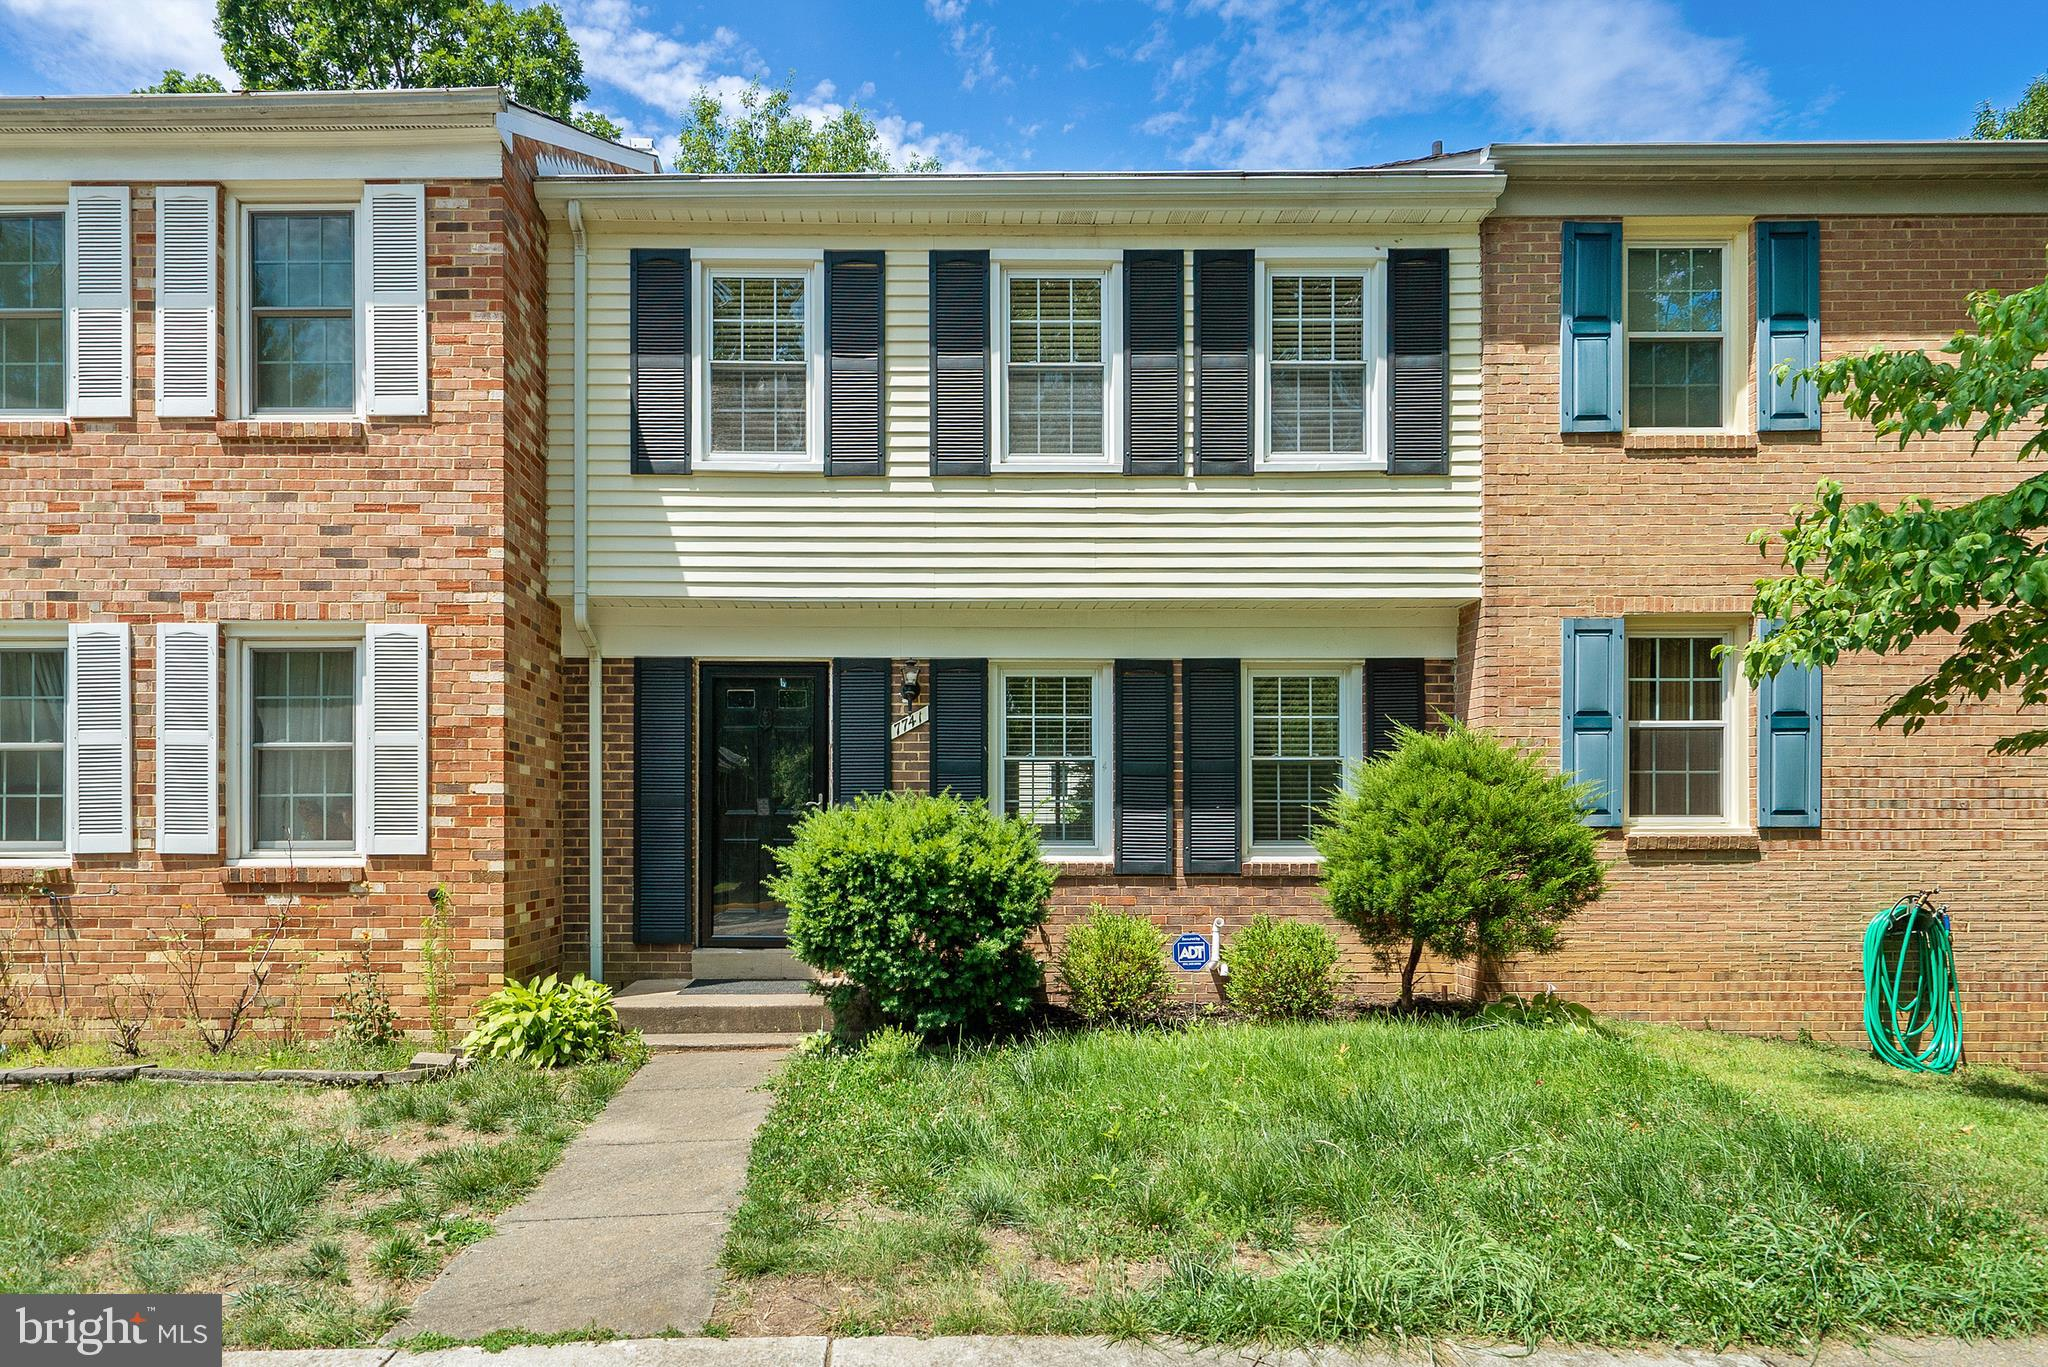 Charming 3-level townhouse with updated stainless steel appliances in kitchen! Hardwood floors in foyer and kitchen, tile bathrooms! 2 assigned spots plus guest parking on private loop street in Newington Station with swimming pool, tennis courts, and tot lots! Great commuter location with easy access to Fairfax County Pkwy, 95, and 495 Beltway, just minutes to Springfield Mall and Ft Belvoir! Home in decent condition overall, but sold in As-Is condition. Needs easy TLC to refresh, would add equity for new owner, or great rental for investor or HGTV enthusiast!